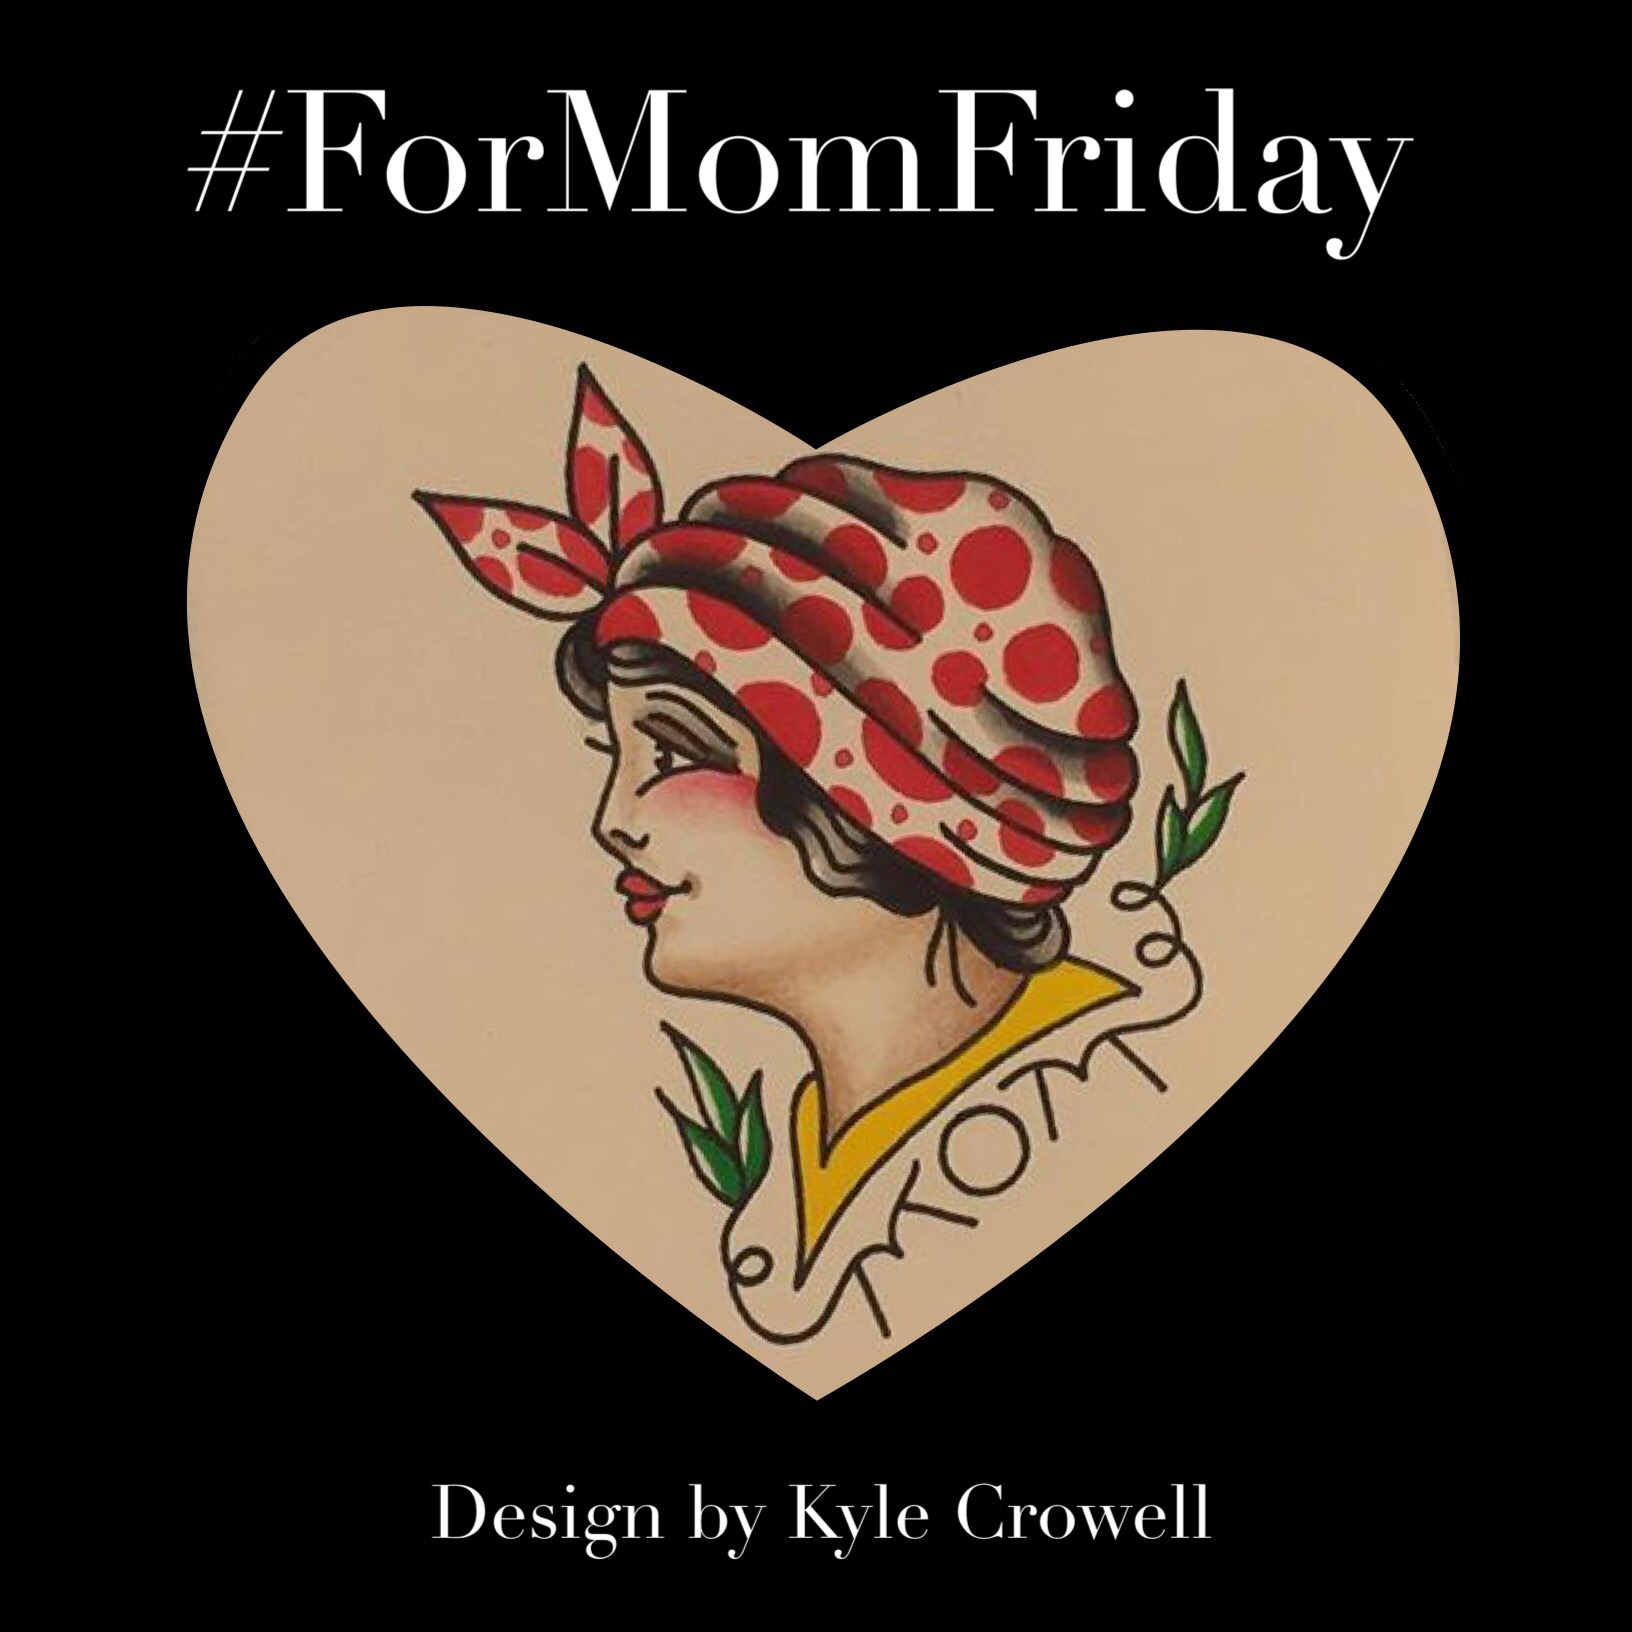 #ForMomFridayDesign by Kyle Crowell